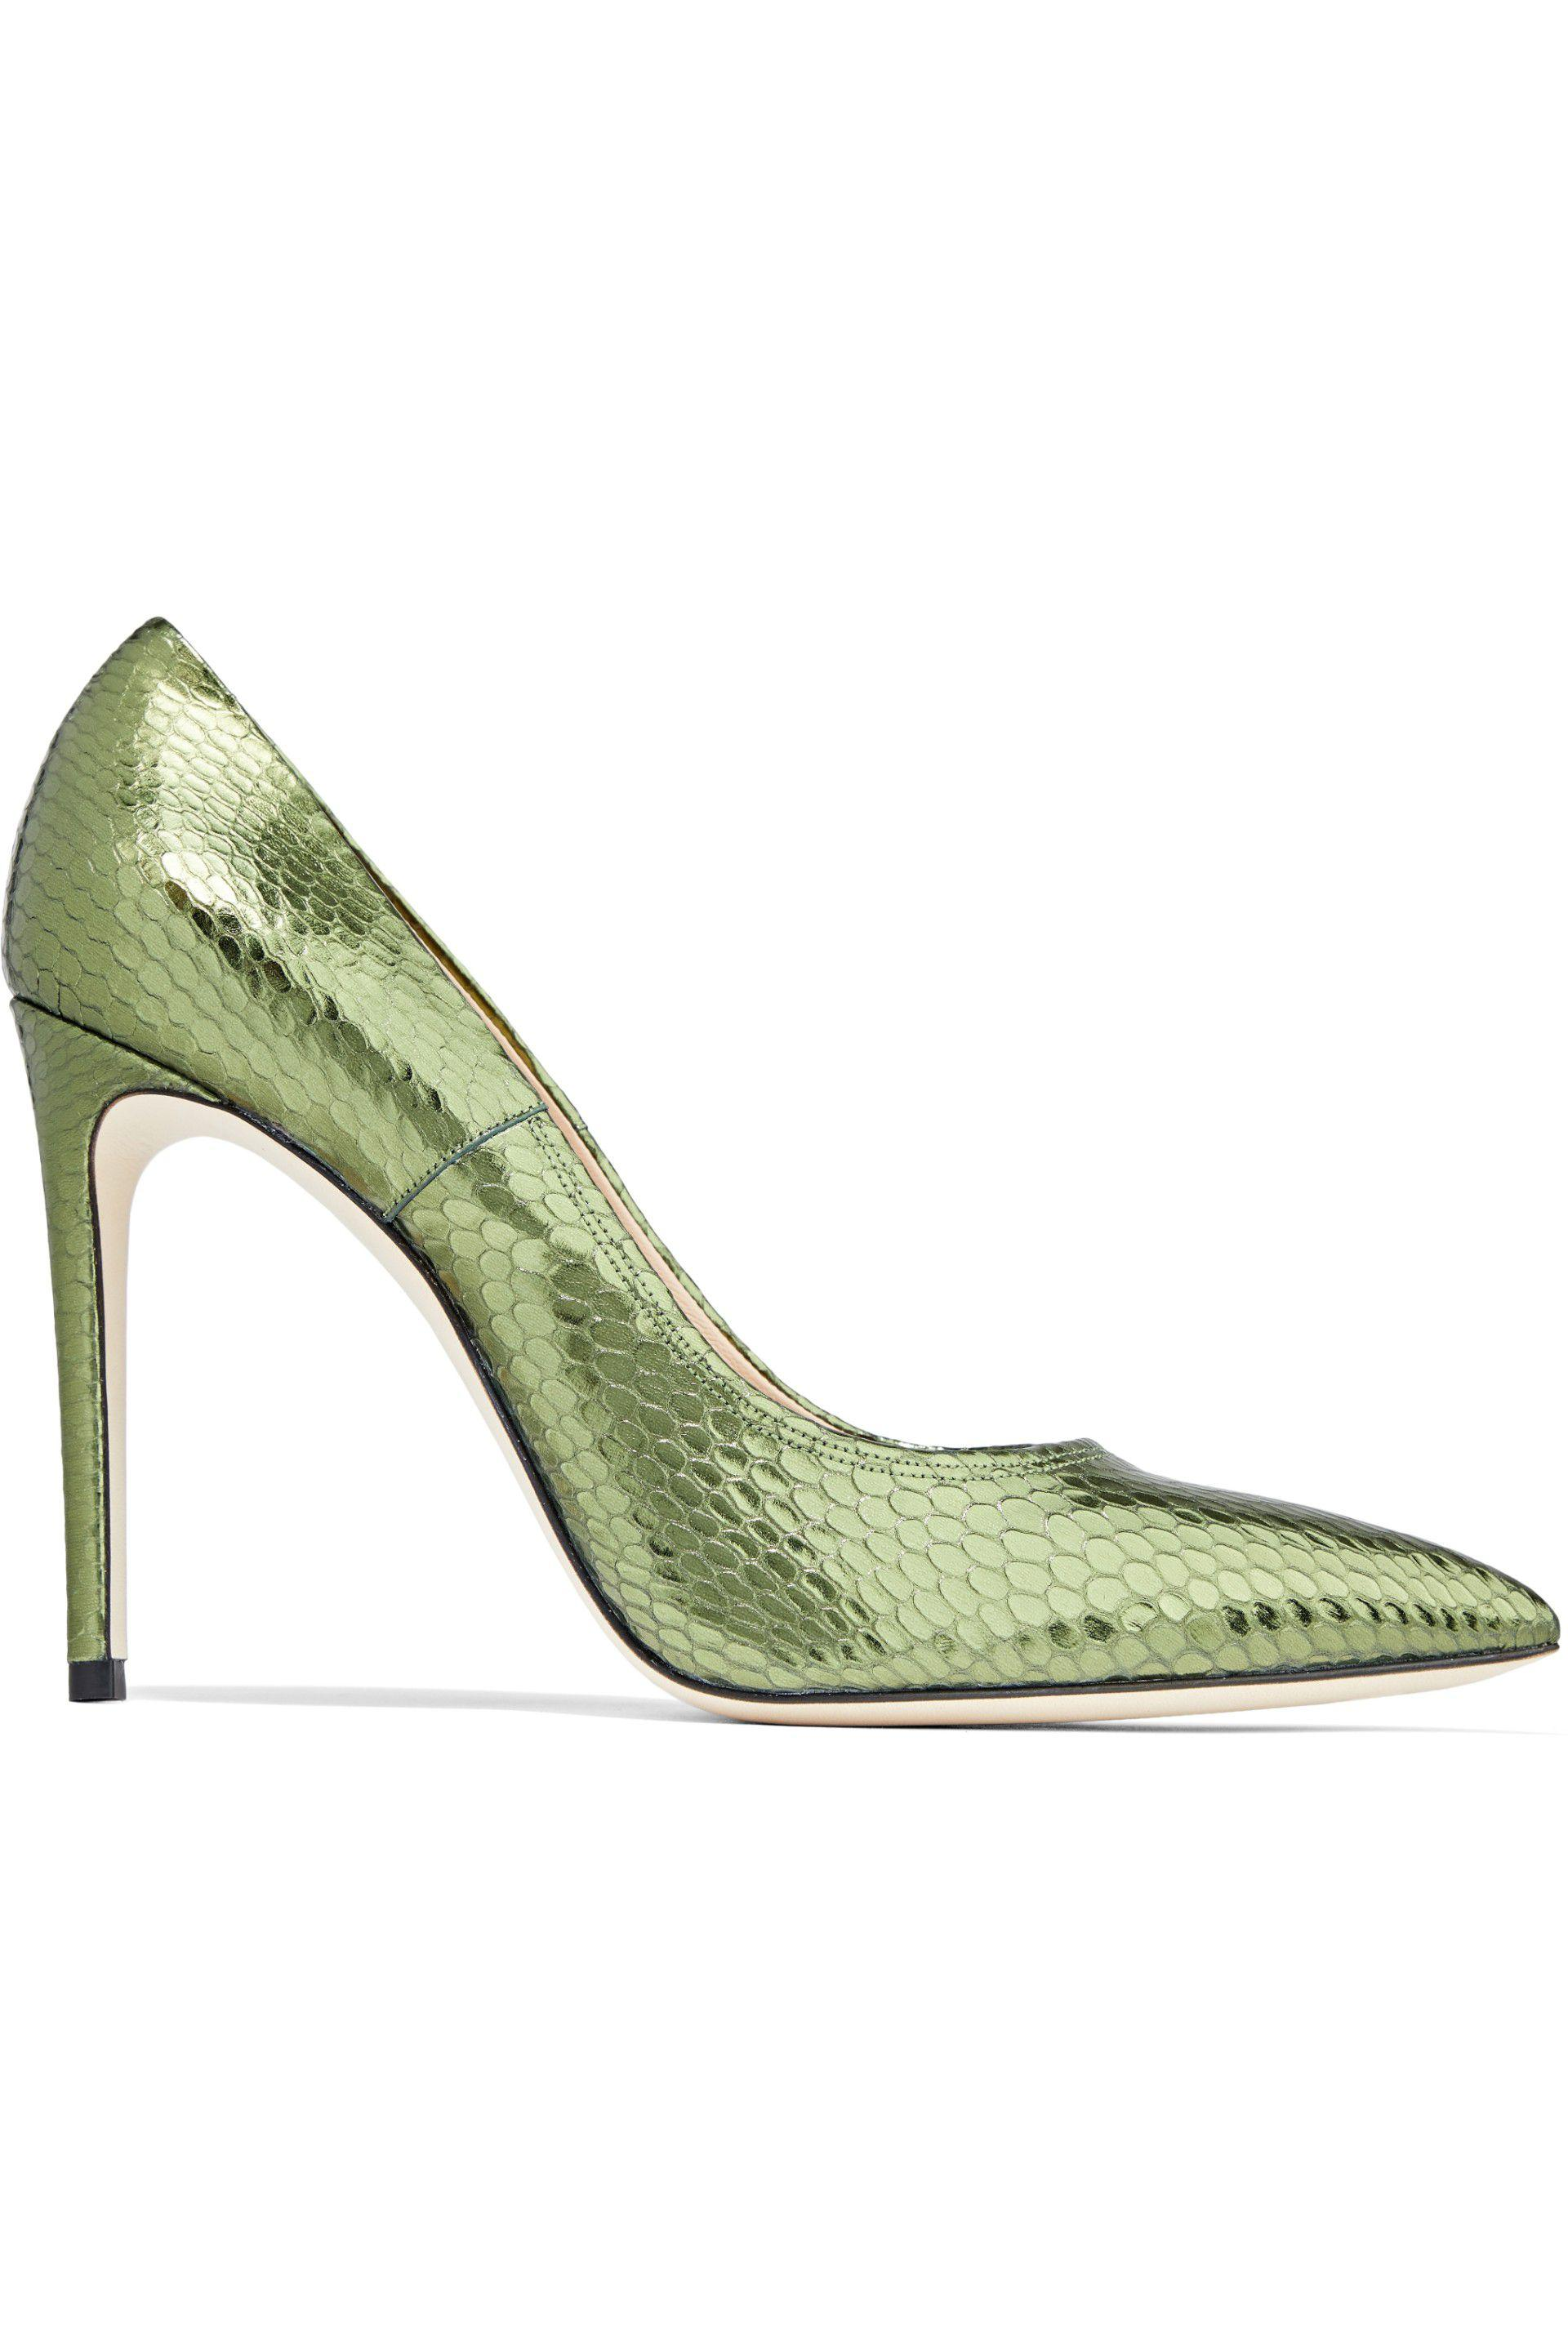 Casadei Woman Chain-embellished Fringed Metallic Leather Pumps Bright Green Size 35 Casadei gkyUIC5v